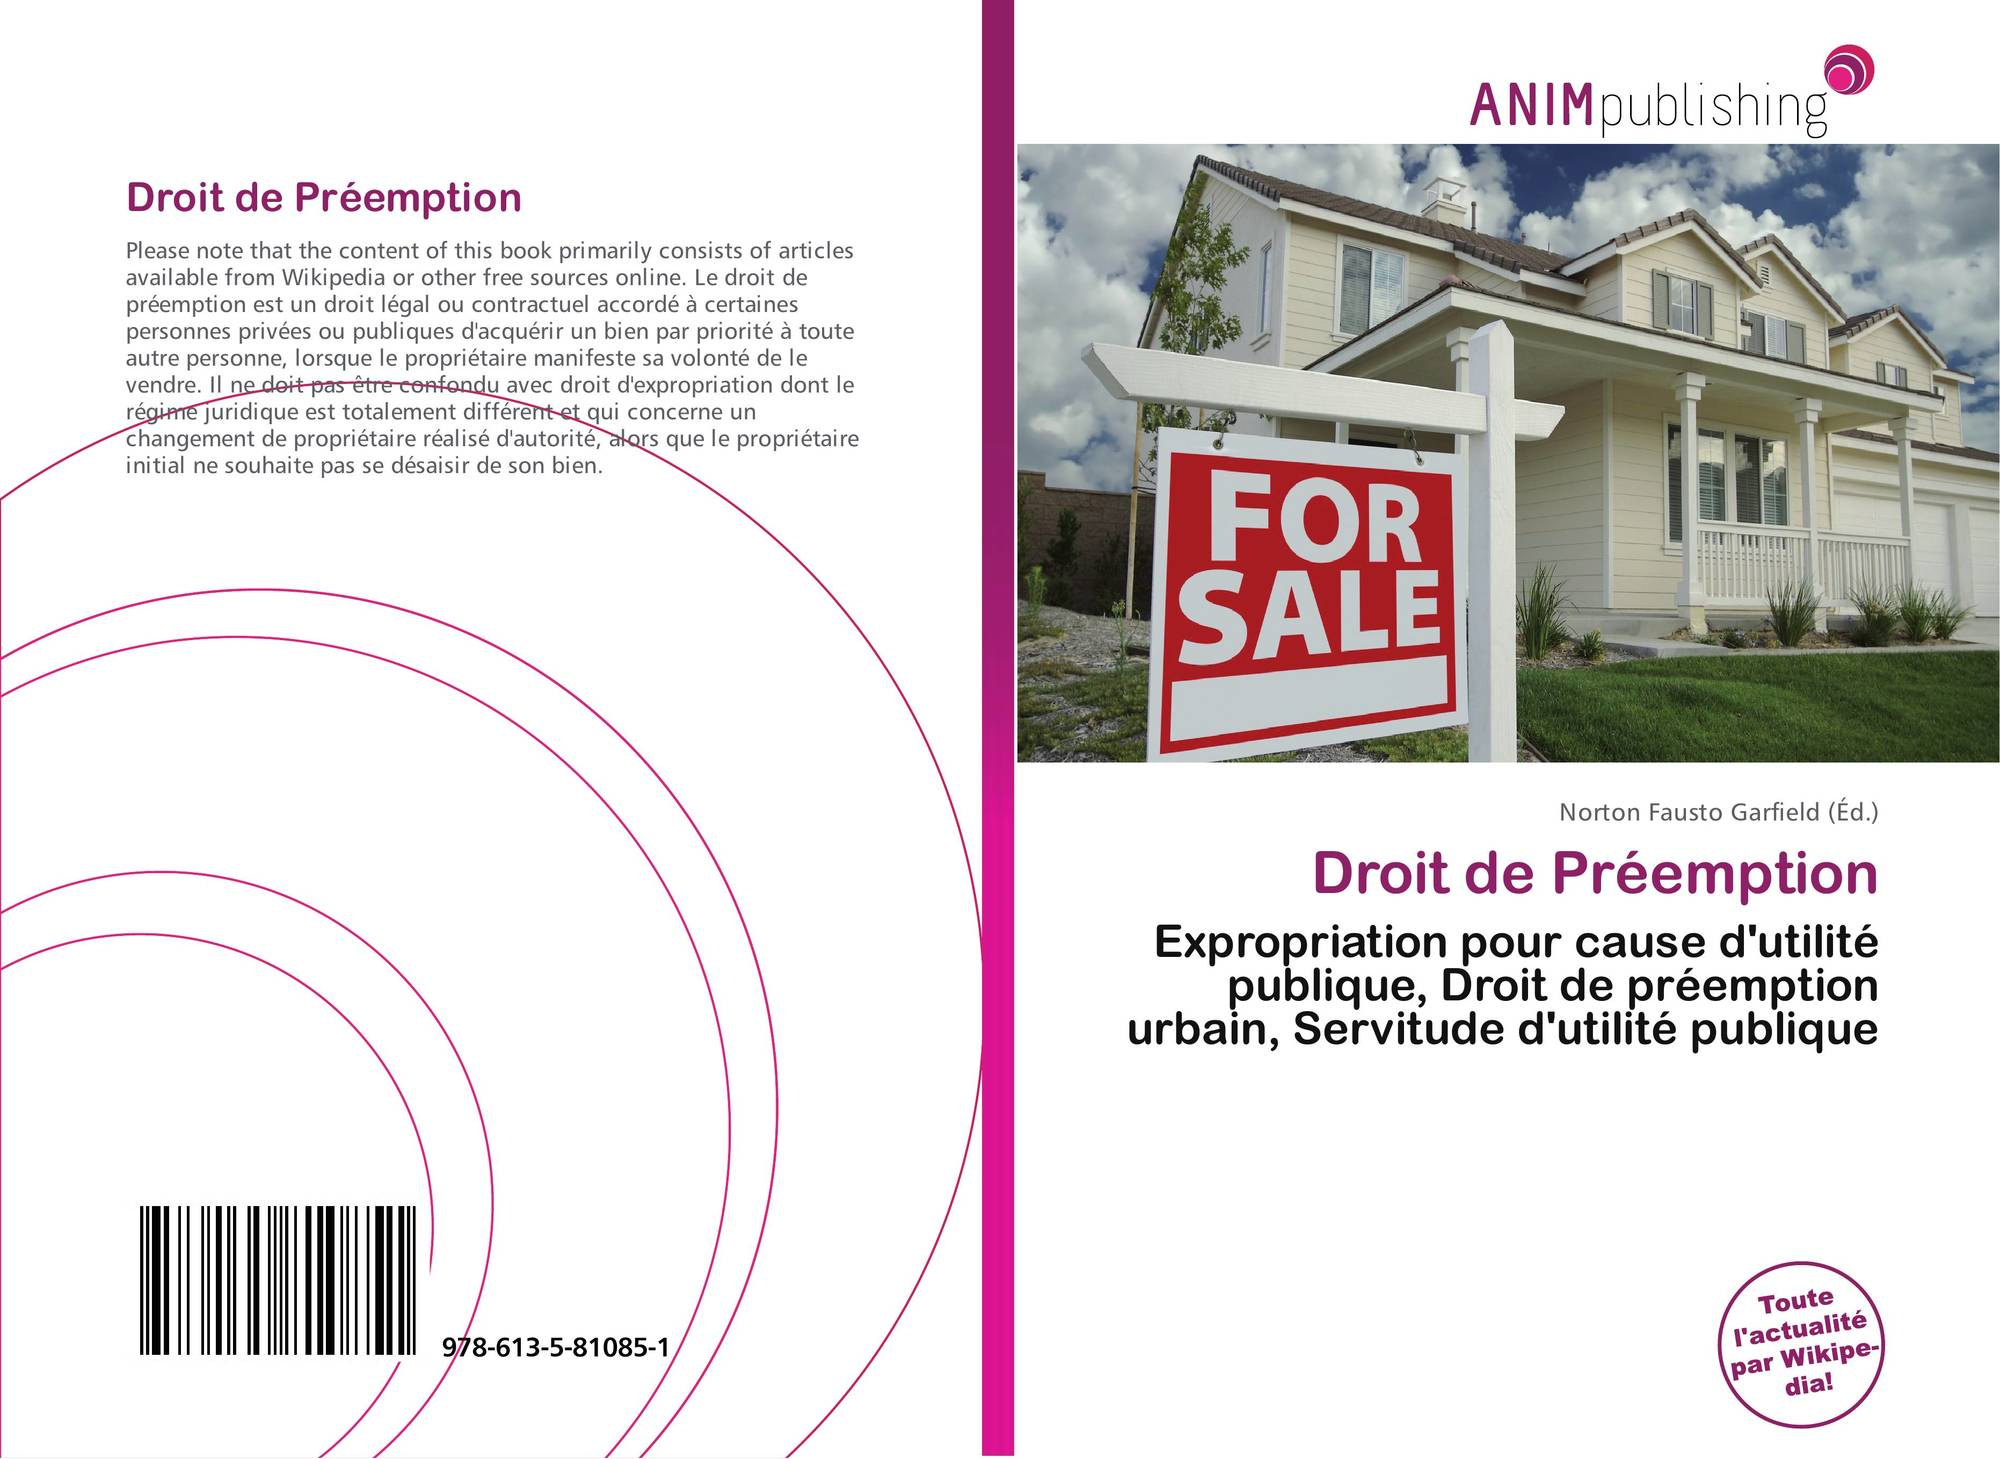 Droit de pr emption 978 613 5 81085 1 6135810855 9786135810851 - Le droit de preemption ...